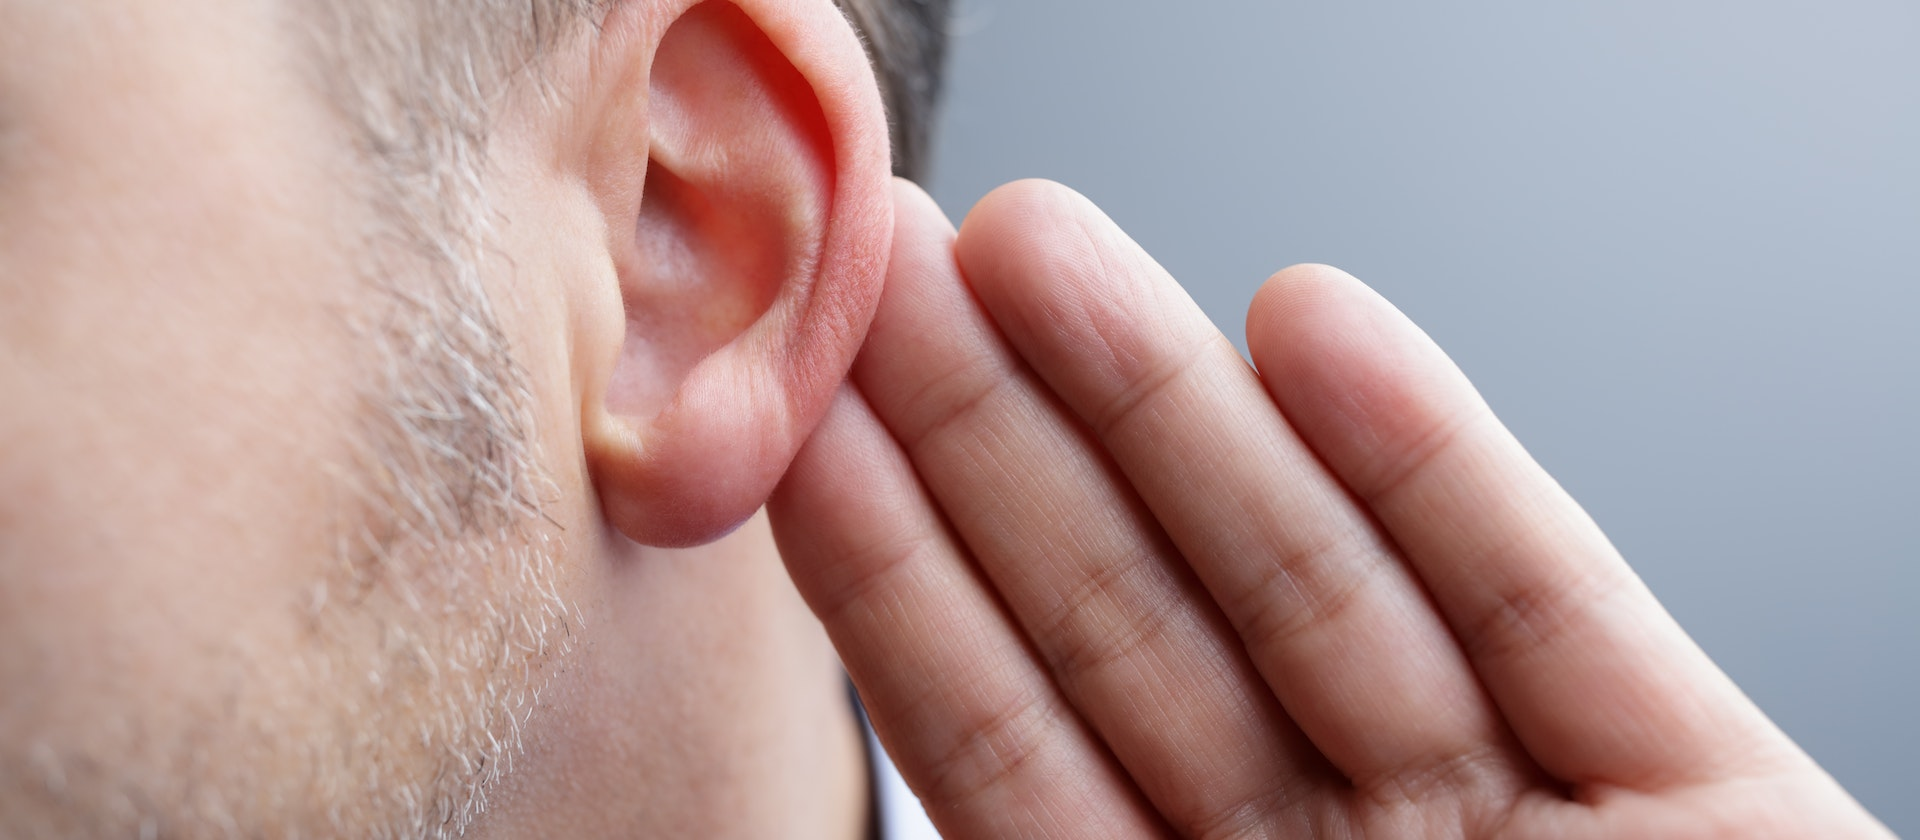 Clear Odorless Ear Discharge Symptom Causes Treatment Buoy